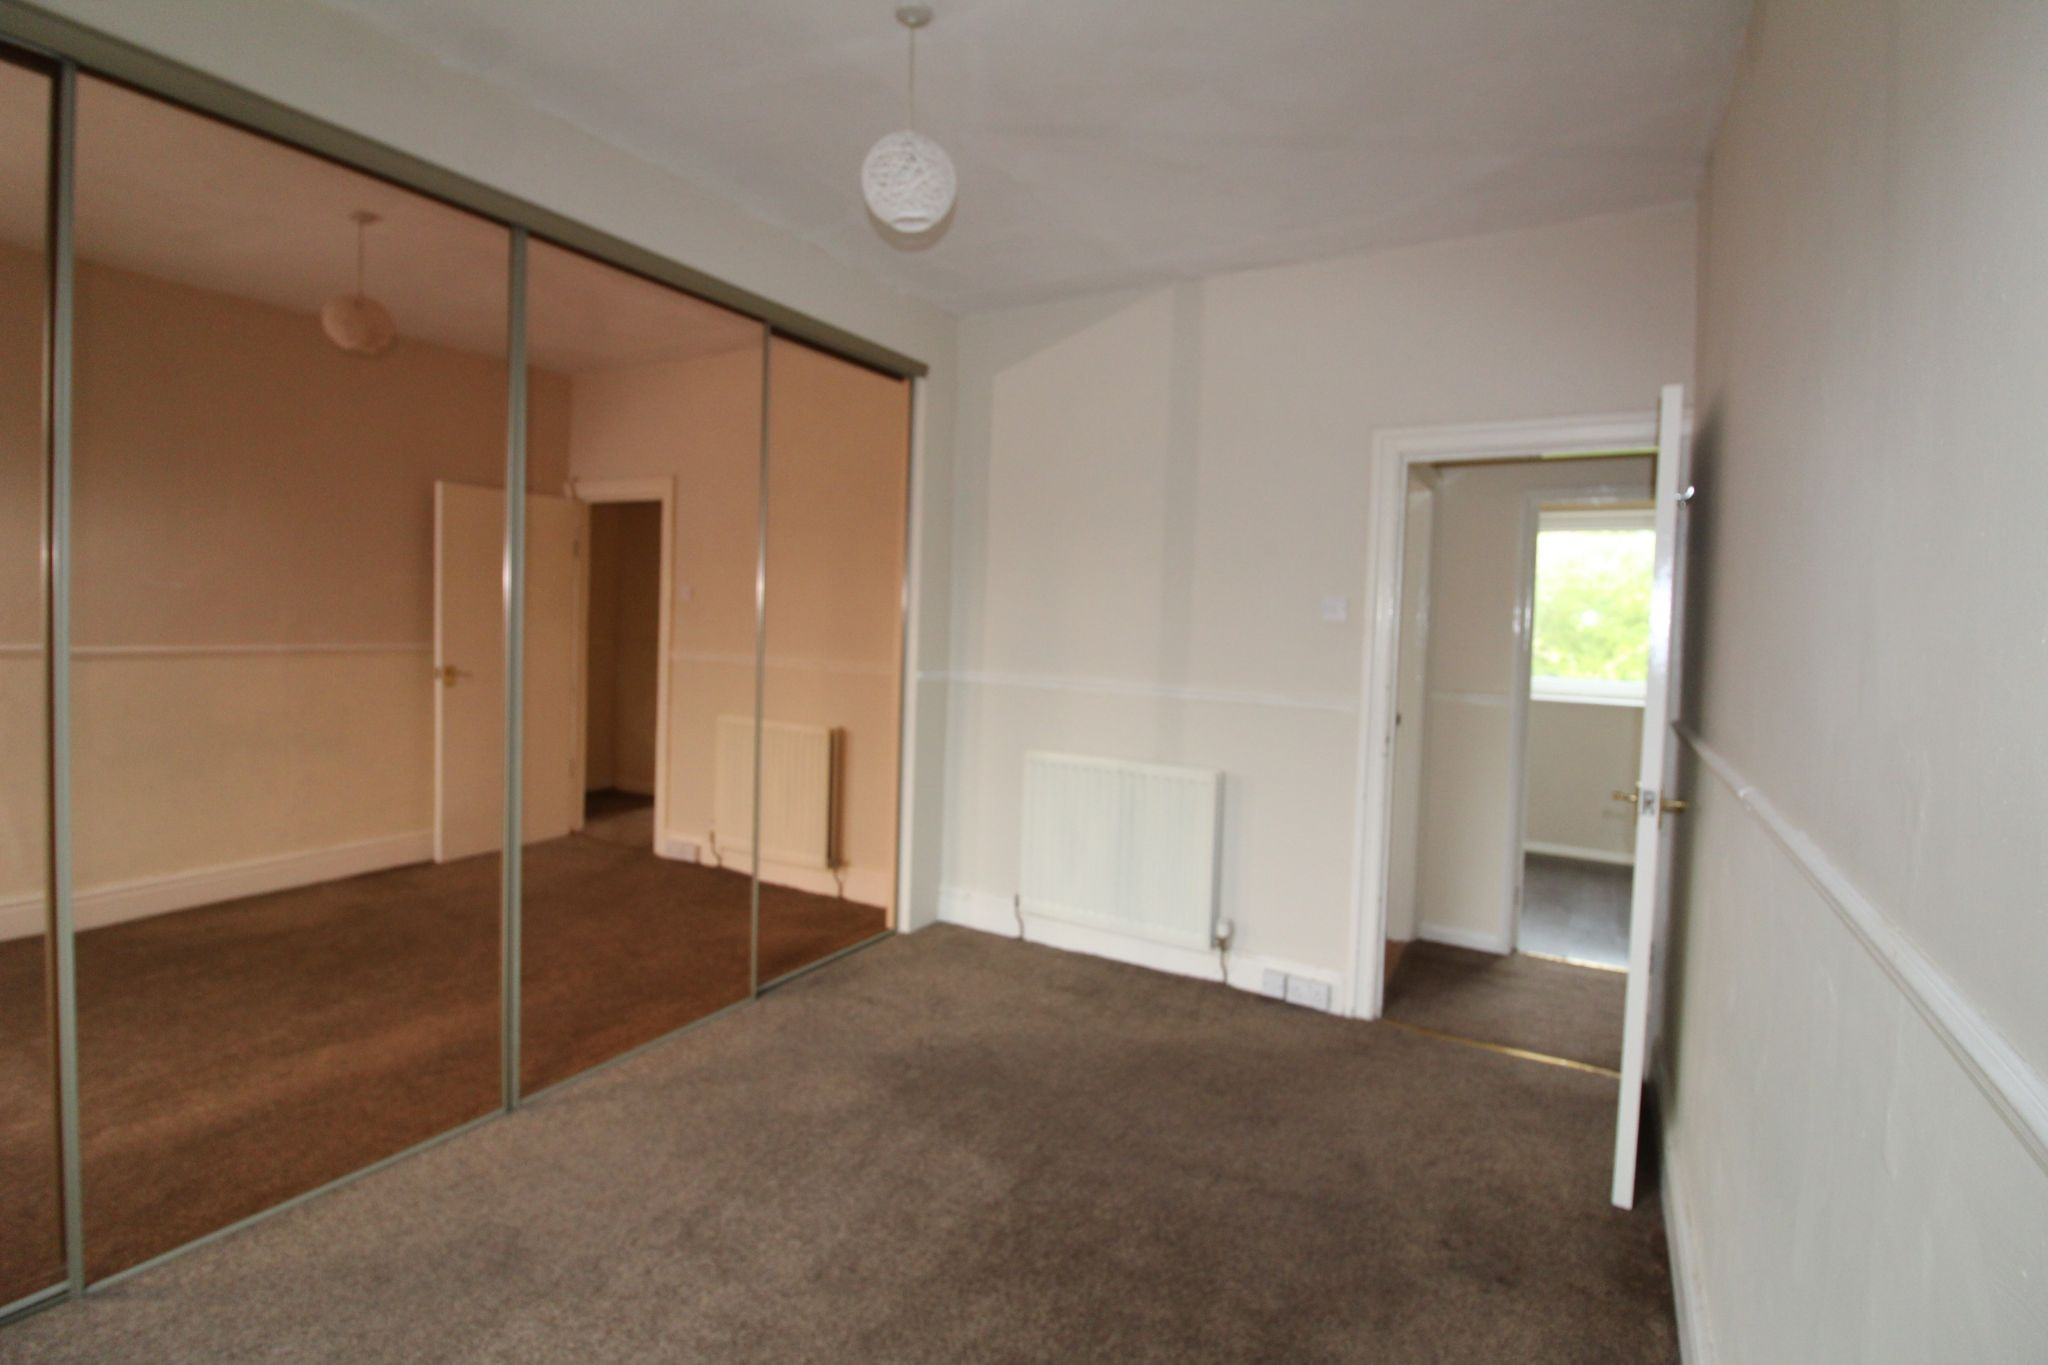 3 bedroom end terraced house For Sale in Willington And Hunwick - Photograph 14.